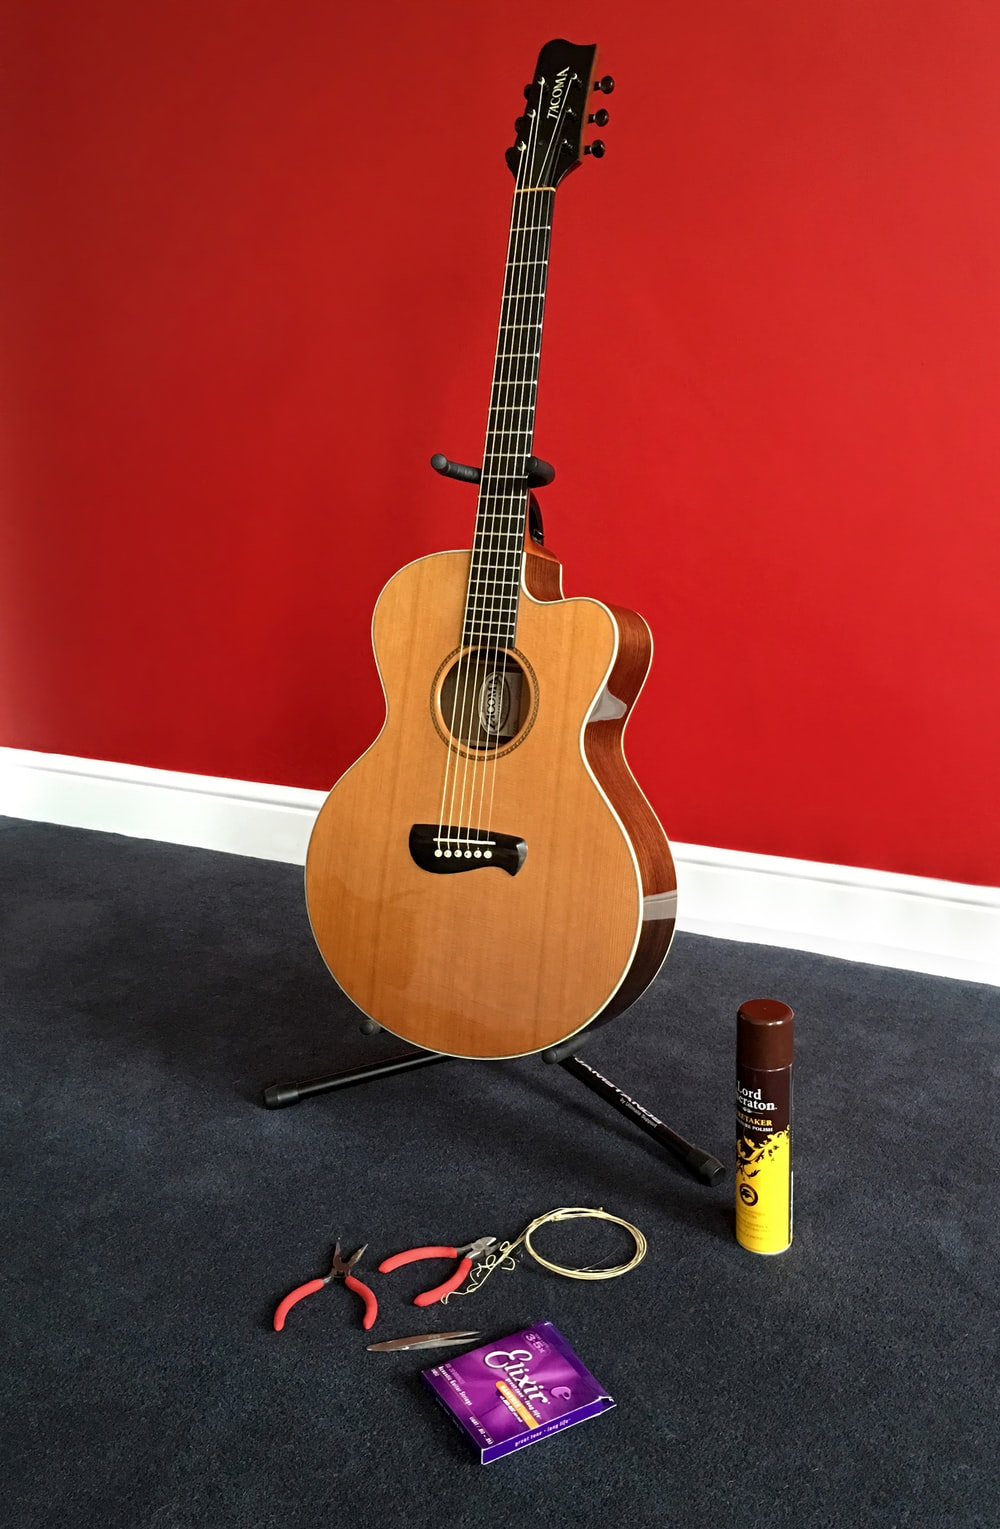 brown acoustic guitar near red handled pliers and spray can